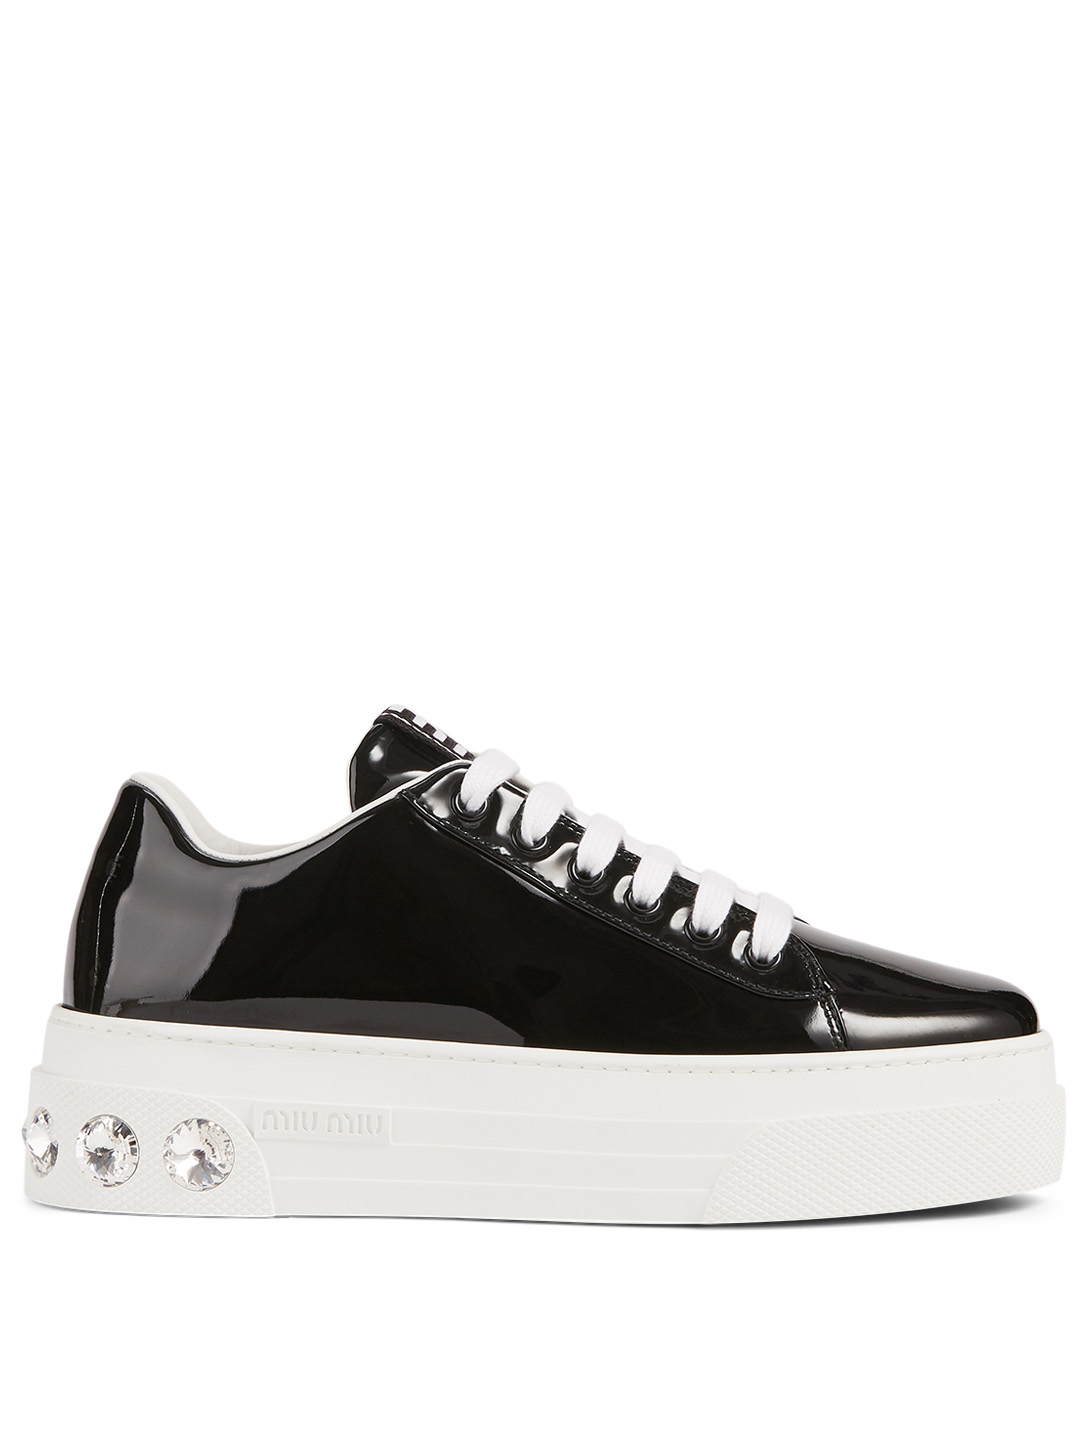 Patent Leather Crystal Platform Sneakers by Holt Renfrew